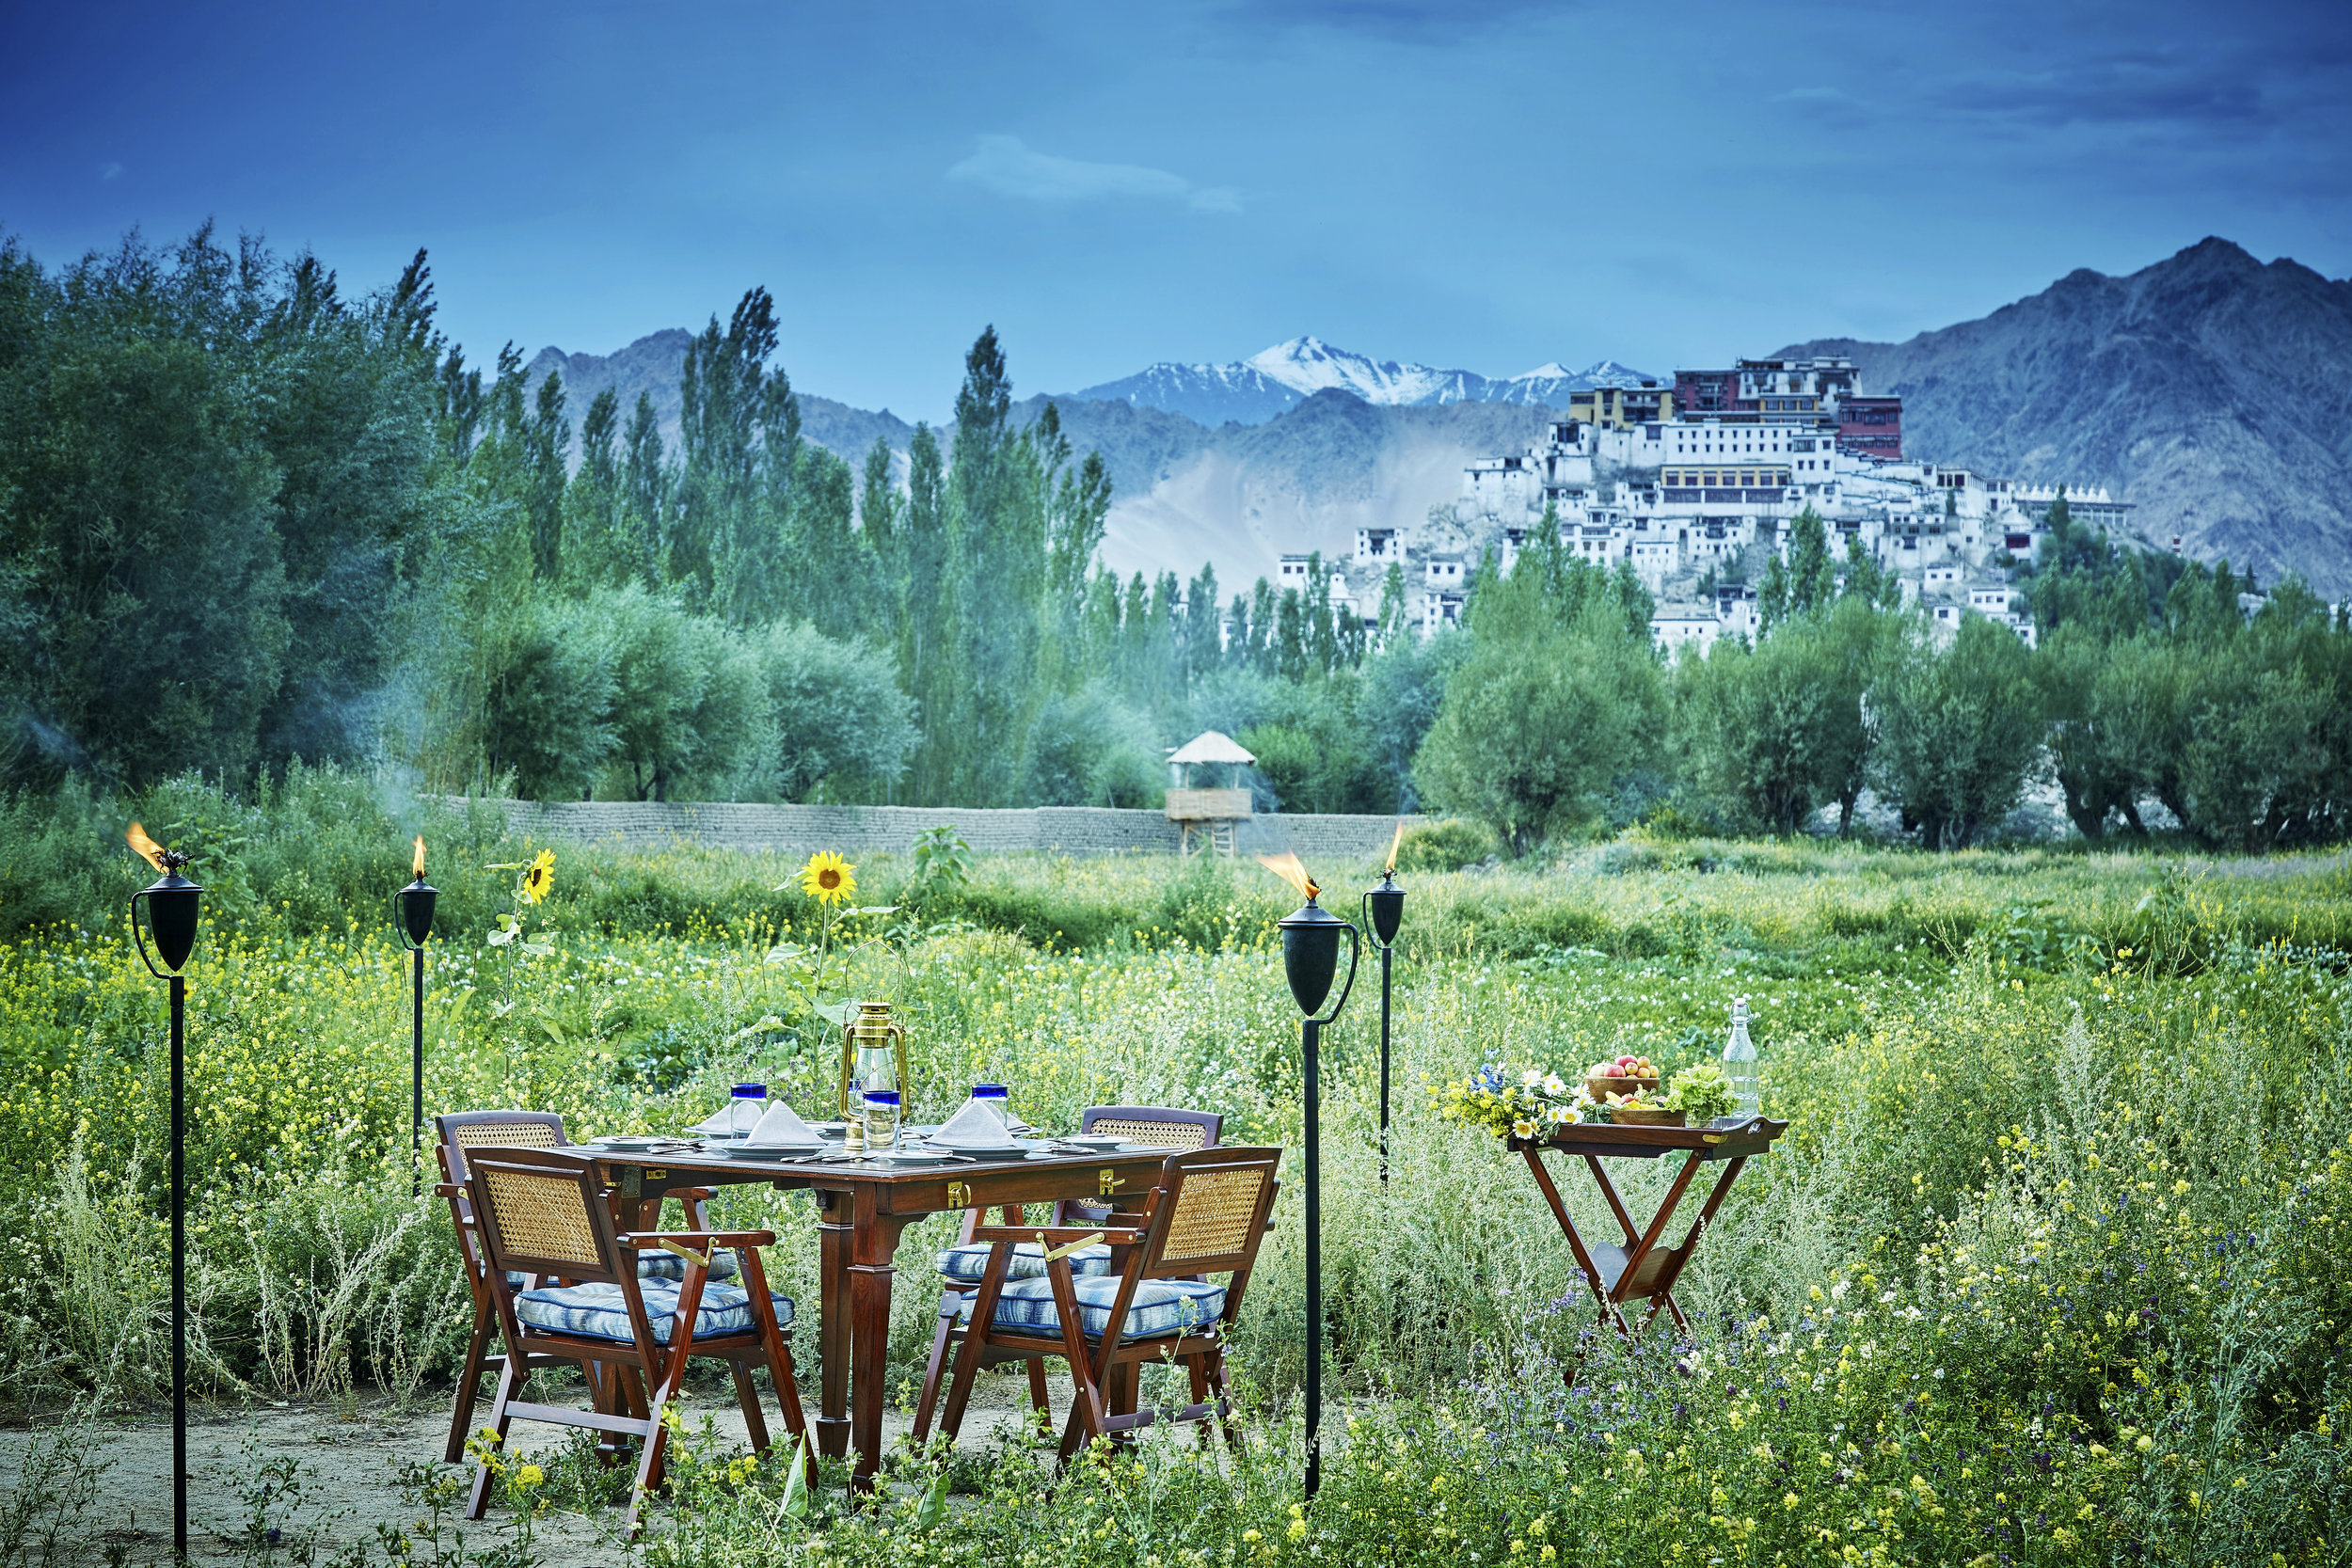 The Ultimate Glamping Experience   Ladakh: Land of the Lamas